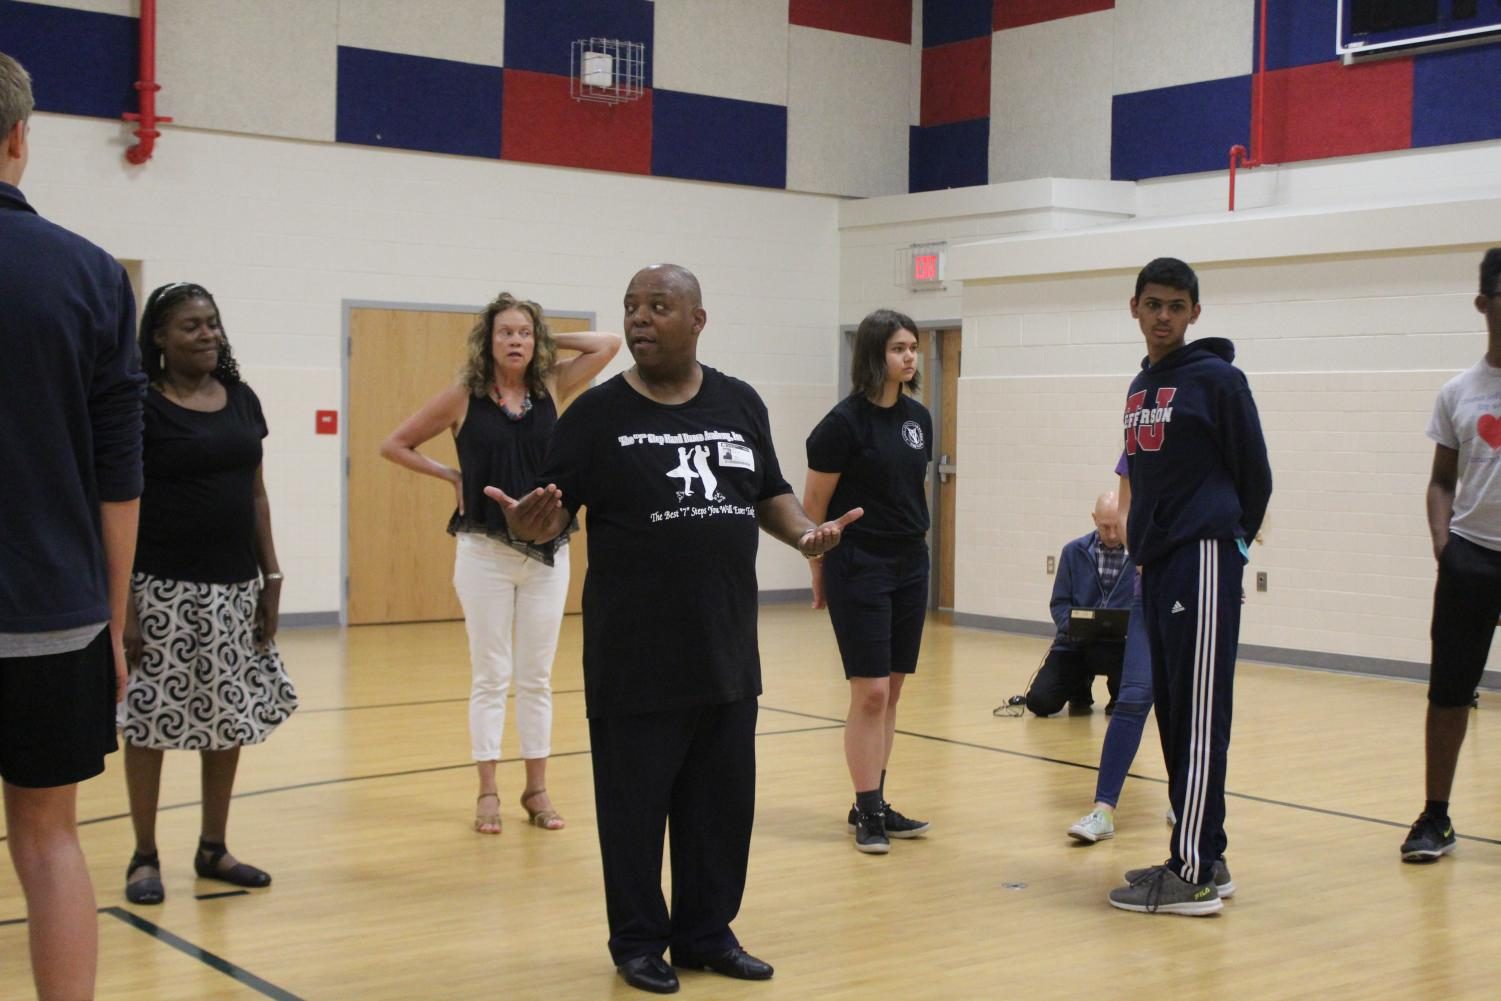 After Señora Gendive asks a question about a particular step, Instructor Morton gathers the attention of the other dancers and they all watch him repeat the step slowly.